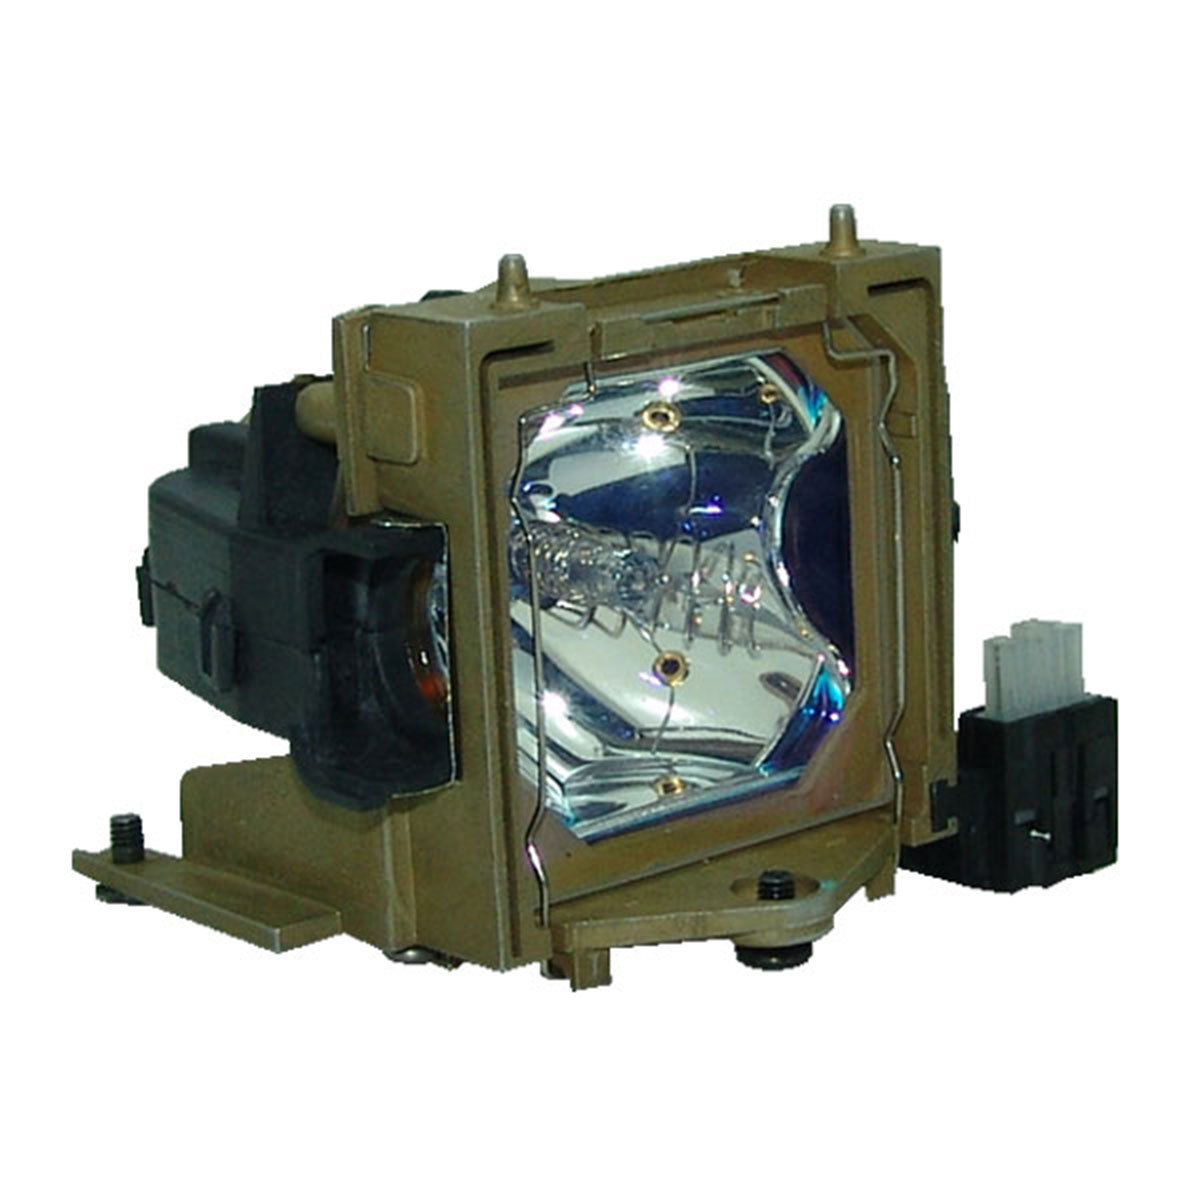 Primary image for Geha 60-270119 Osram Projector Lamp Module